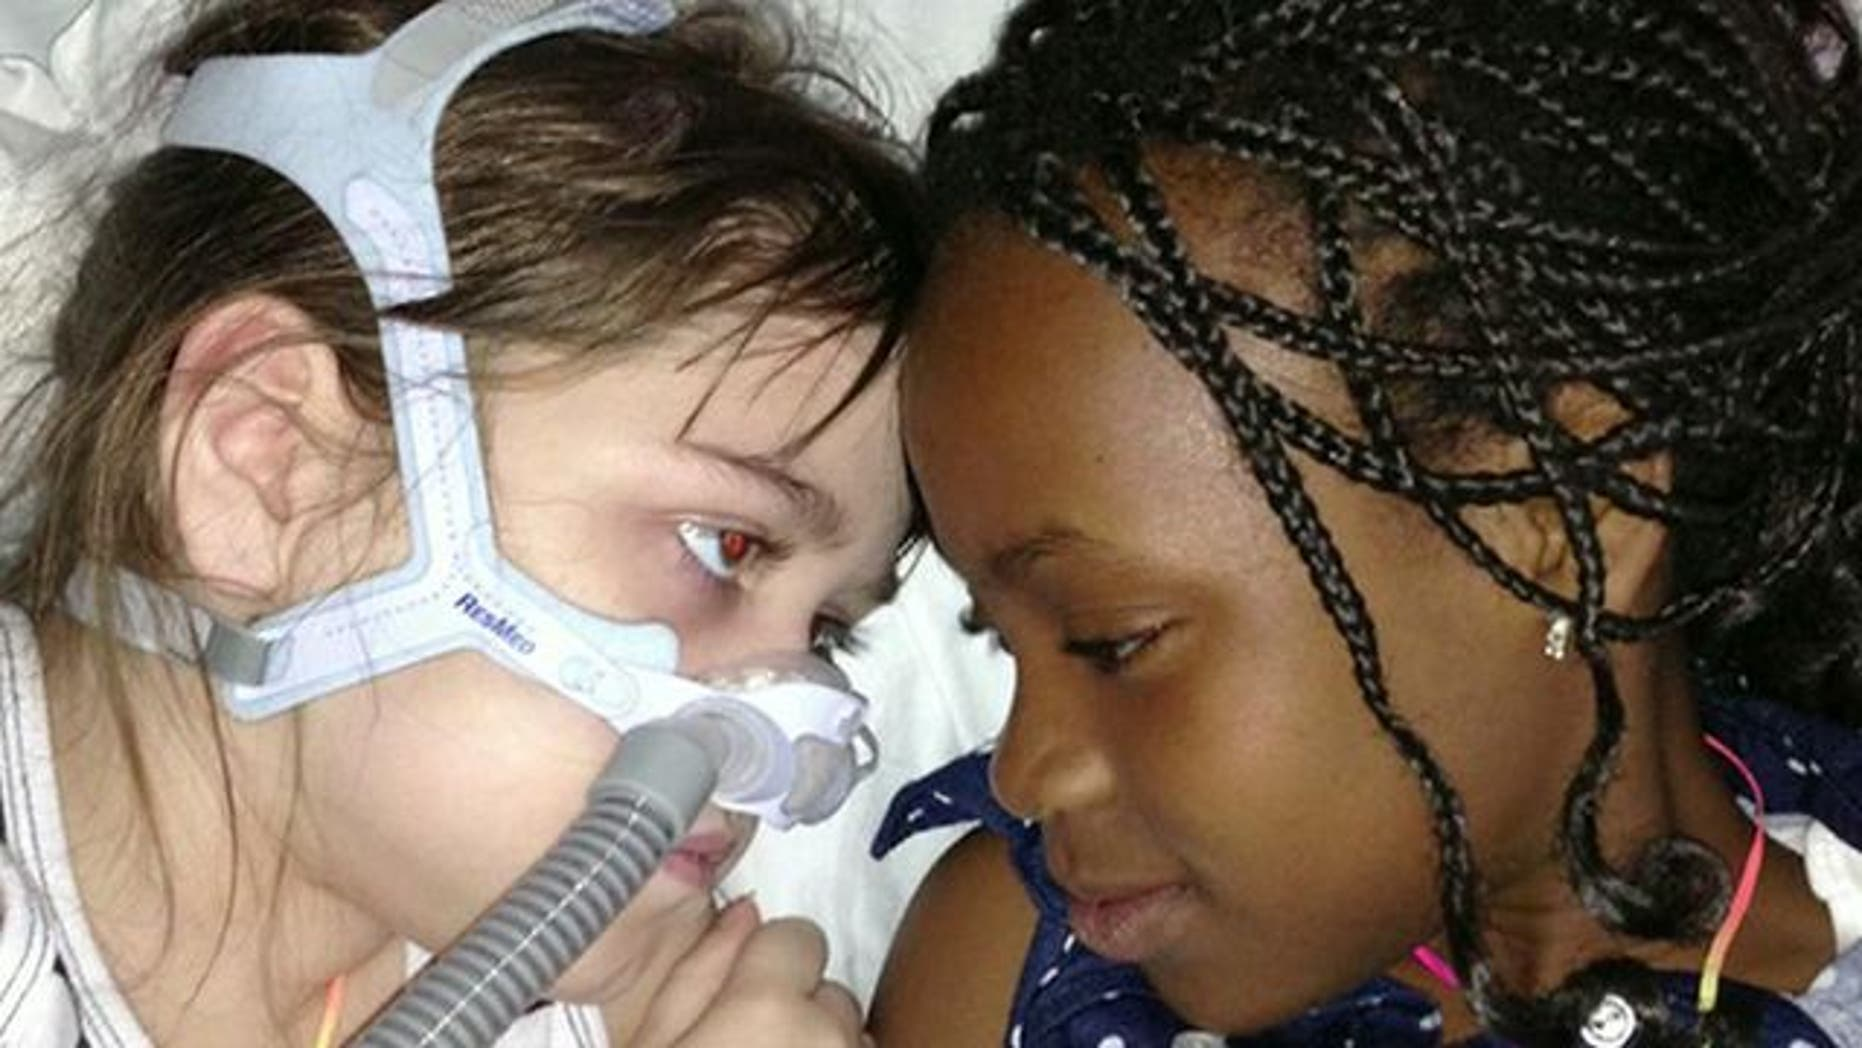 May 30, 2013: Sarah Murnaghan, left, lies in her hospital bed next to adopted sister Ella on the 100th day of her stay in Children's Hospital of Philadelphia.